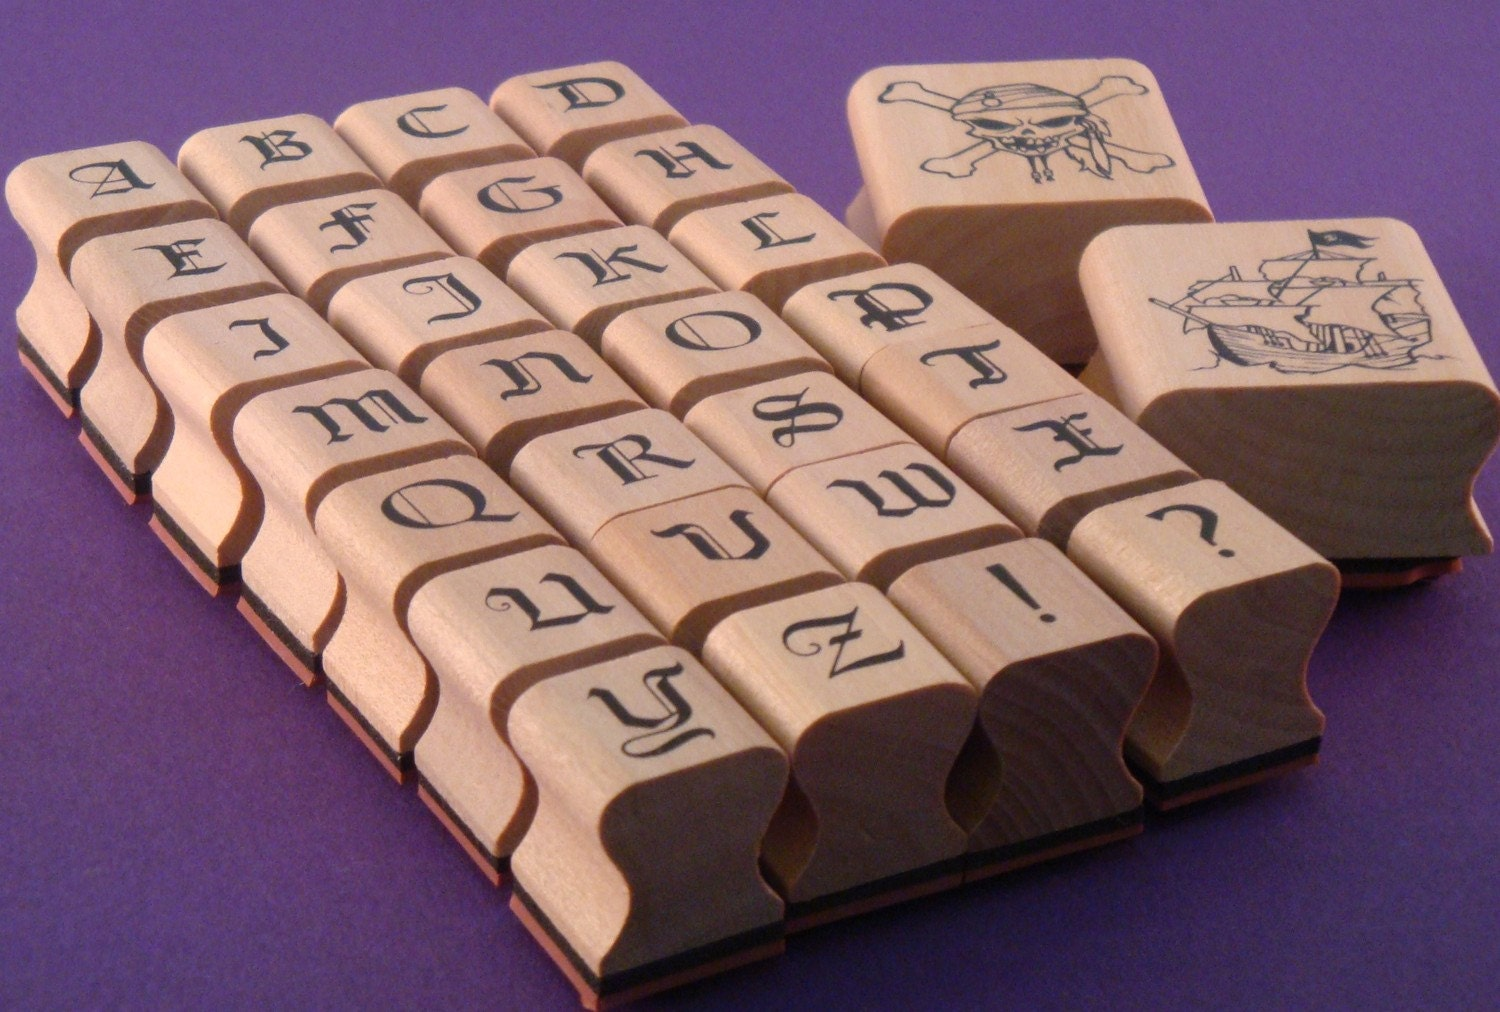 Rubber stamp alphabet pirate collection old english type